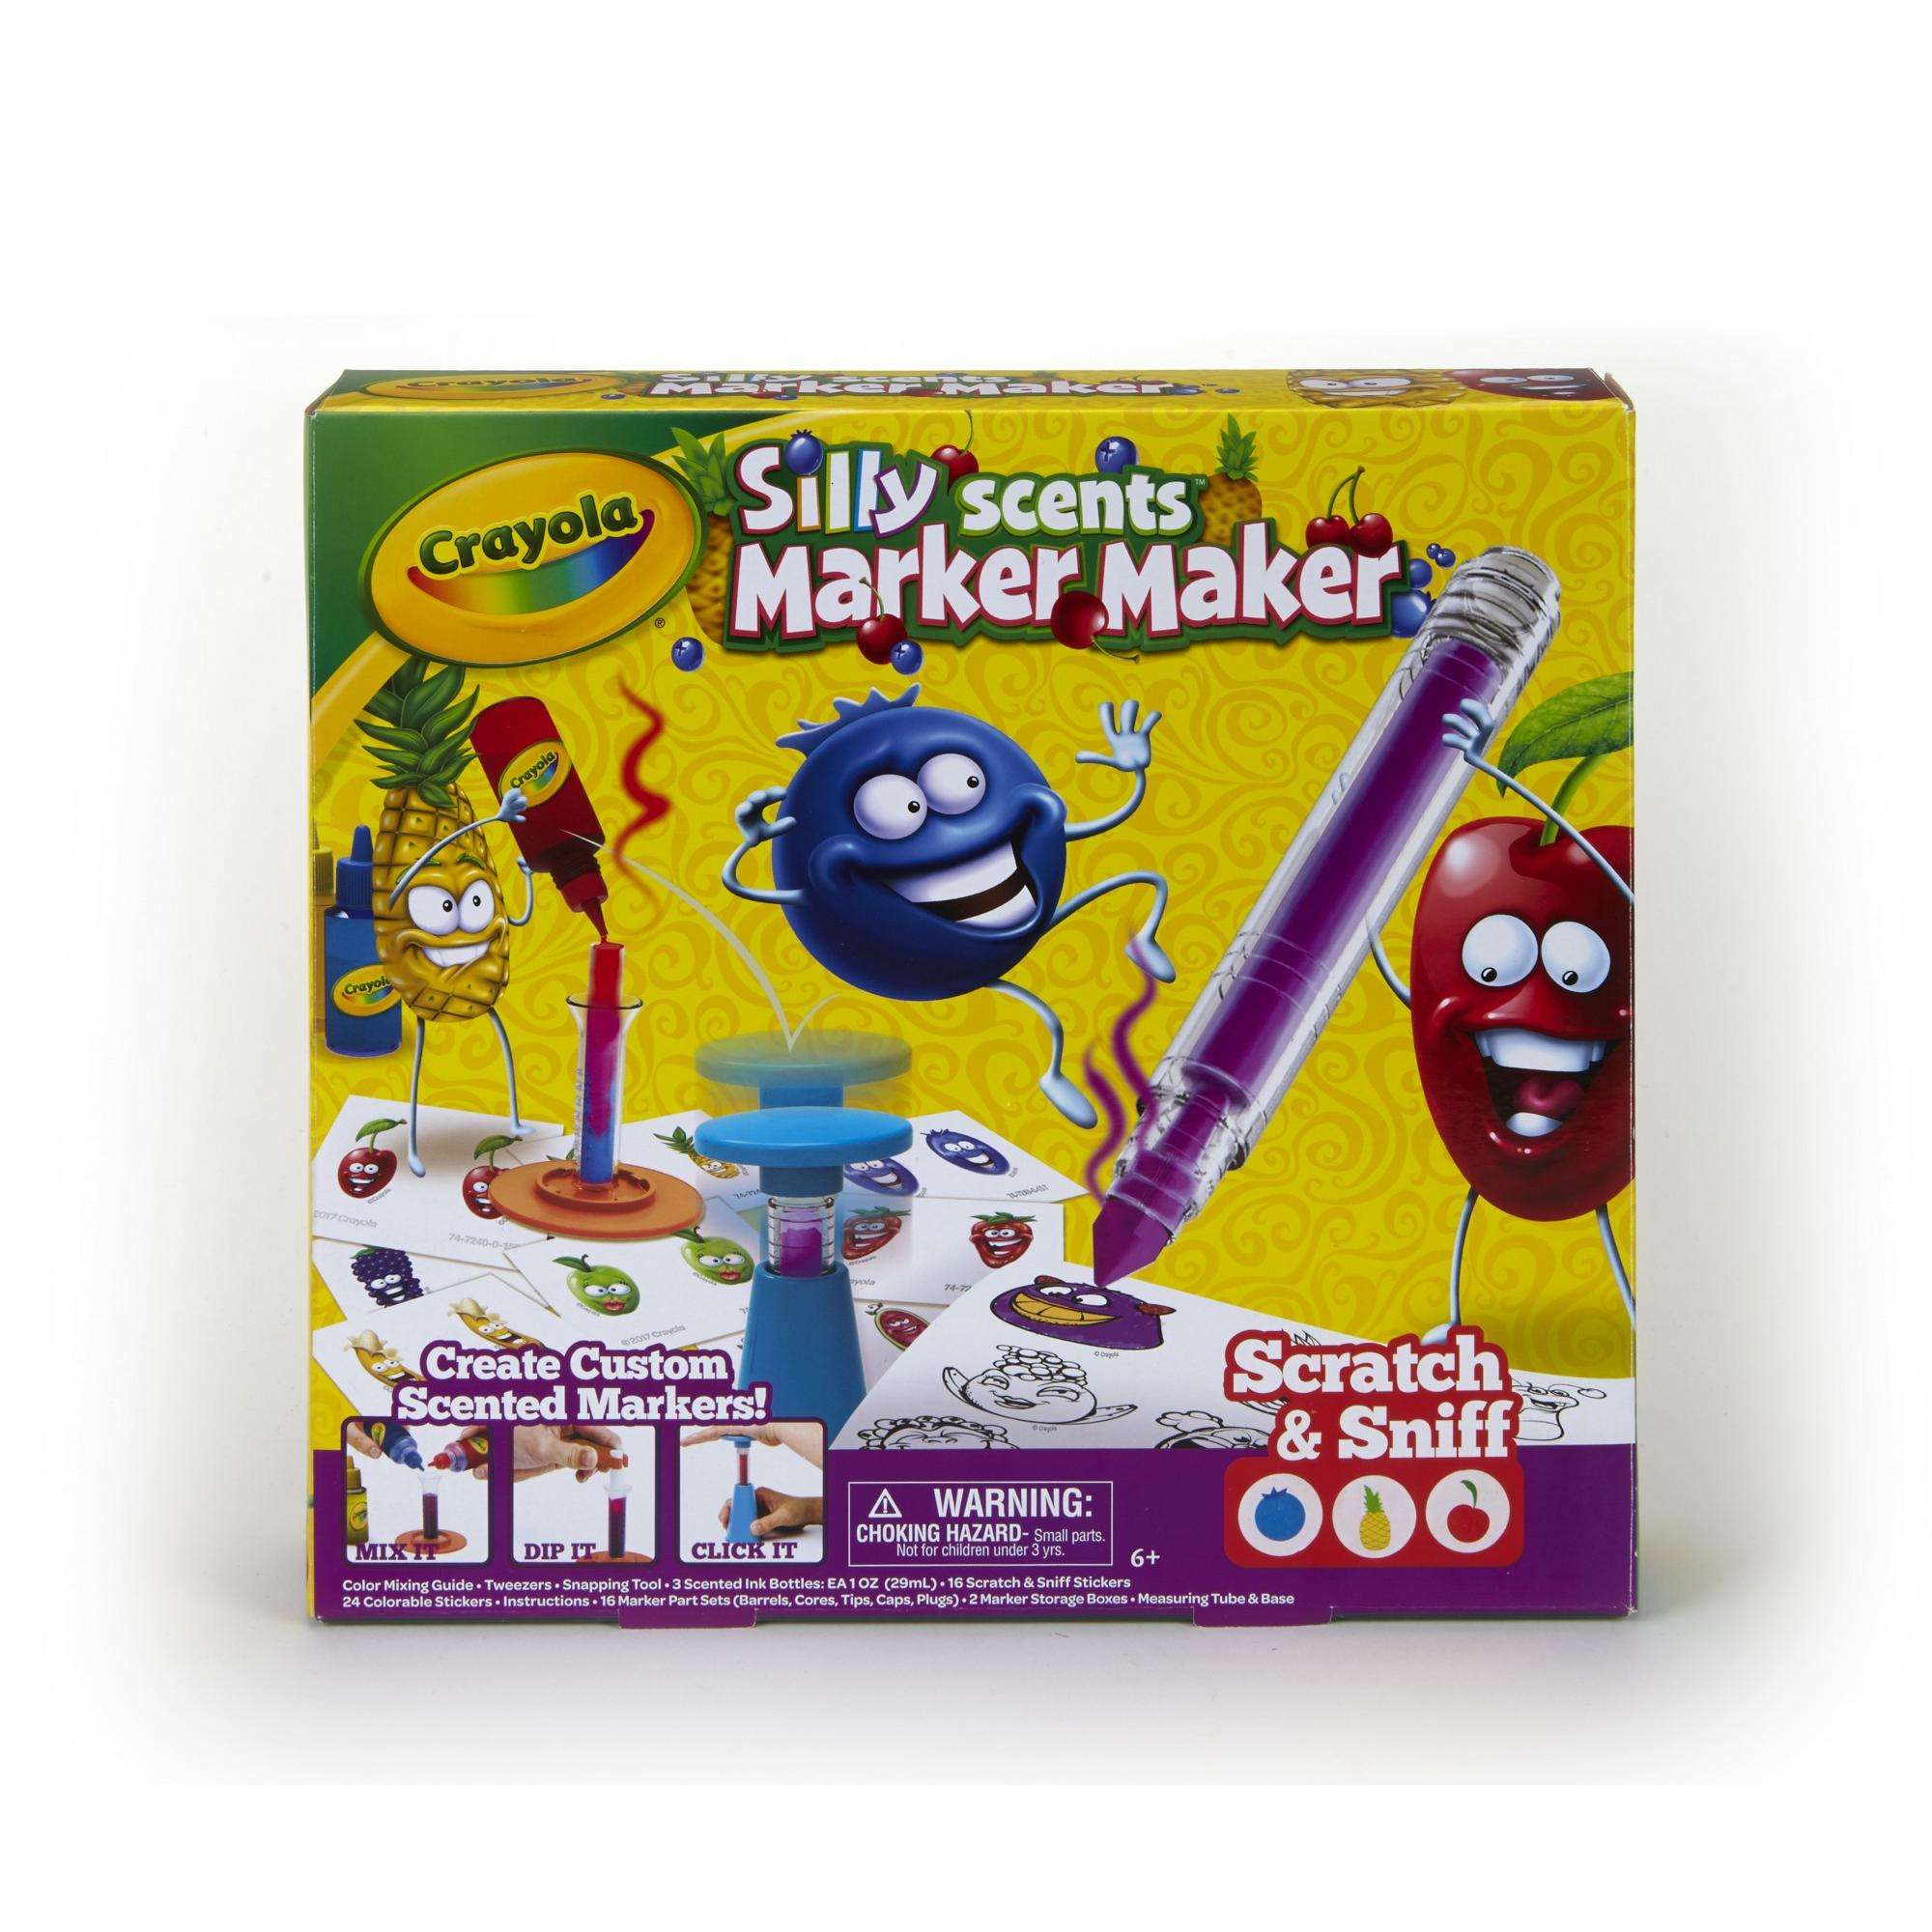 Crayola Silly Scents Marker Maker Kit: Make Your Own Smelly Markers by Crayola